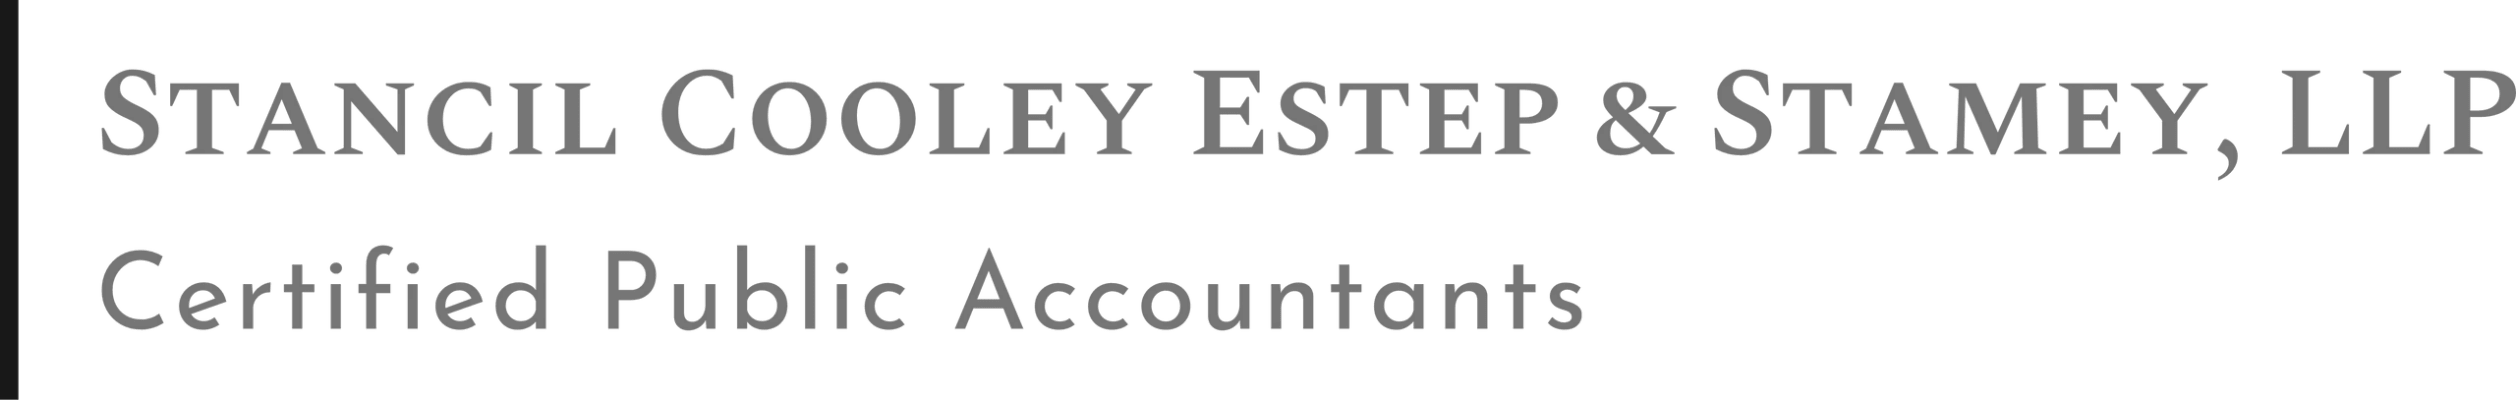 Stancil Cooley Estep & Stamey, LLP Certified Public Accountants